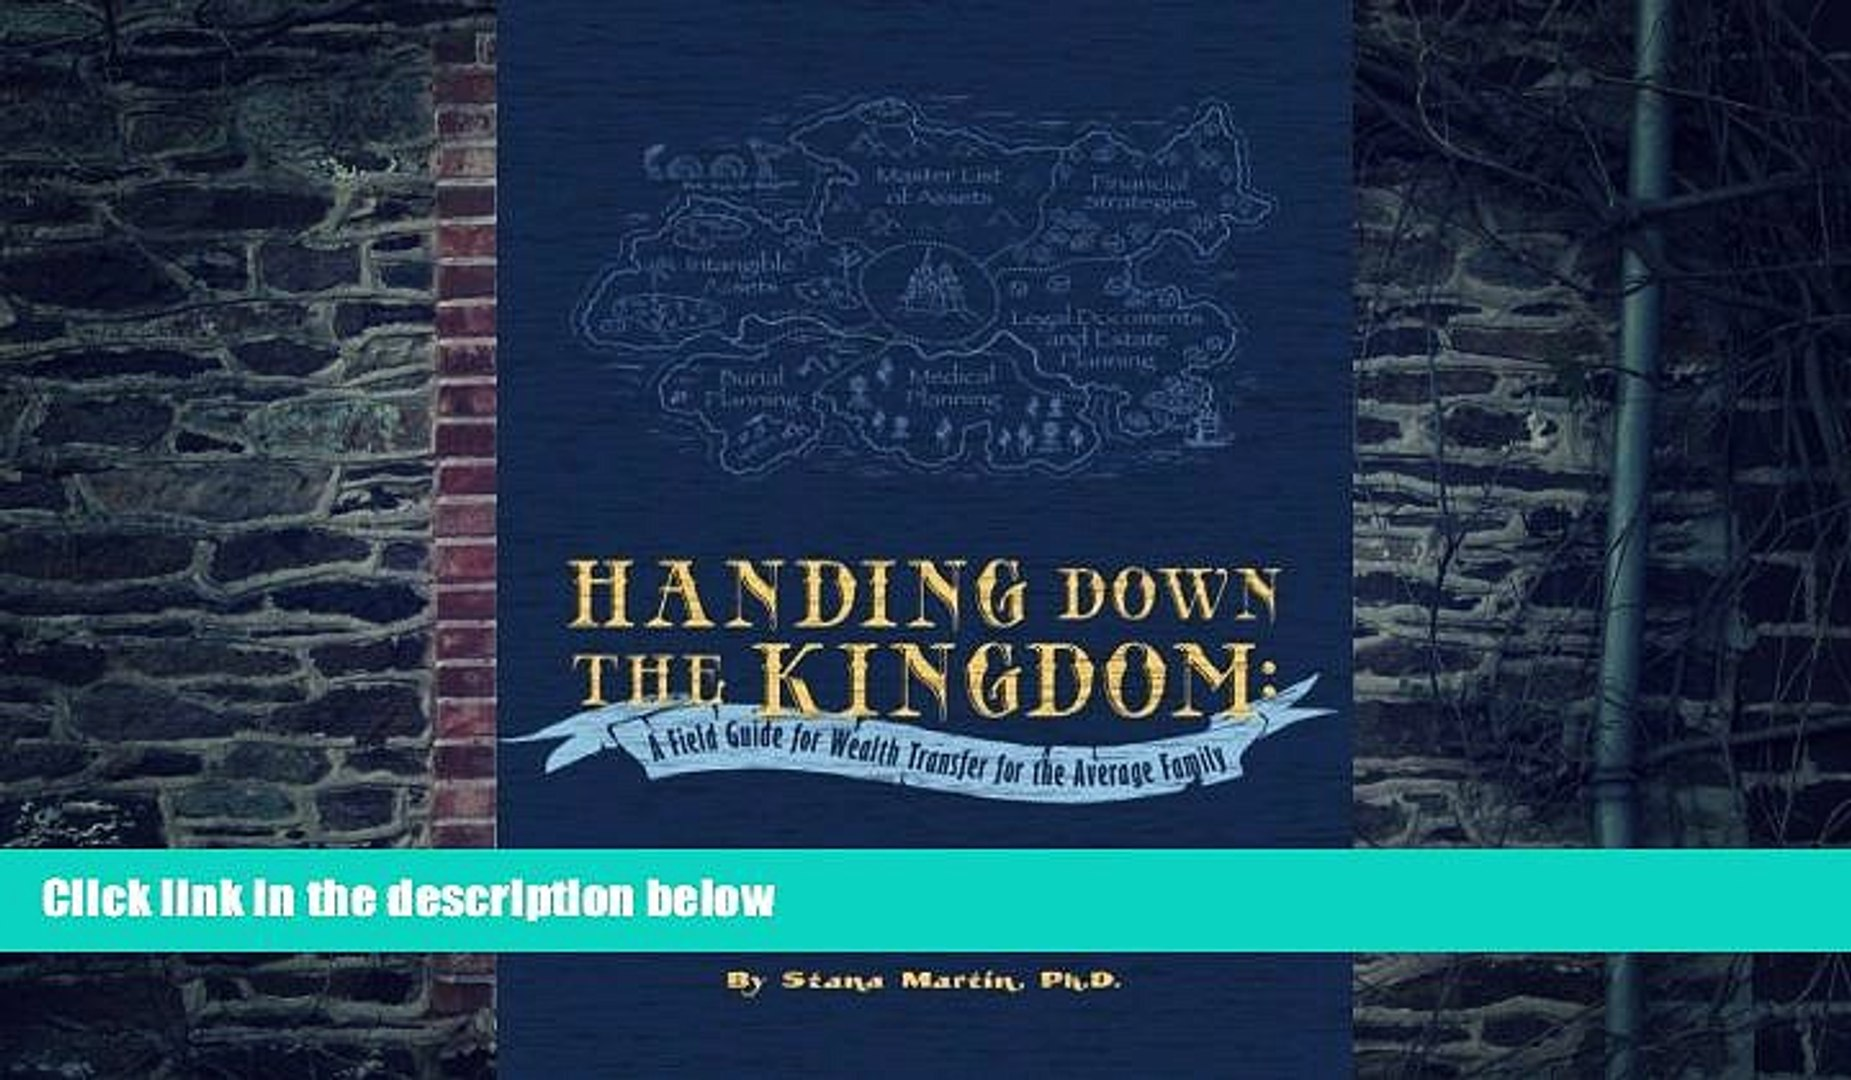 Buy NOW  Handing Down the Kingdom: A Field Guide for Wealth Transfer for the Average Family Stana